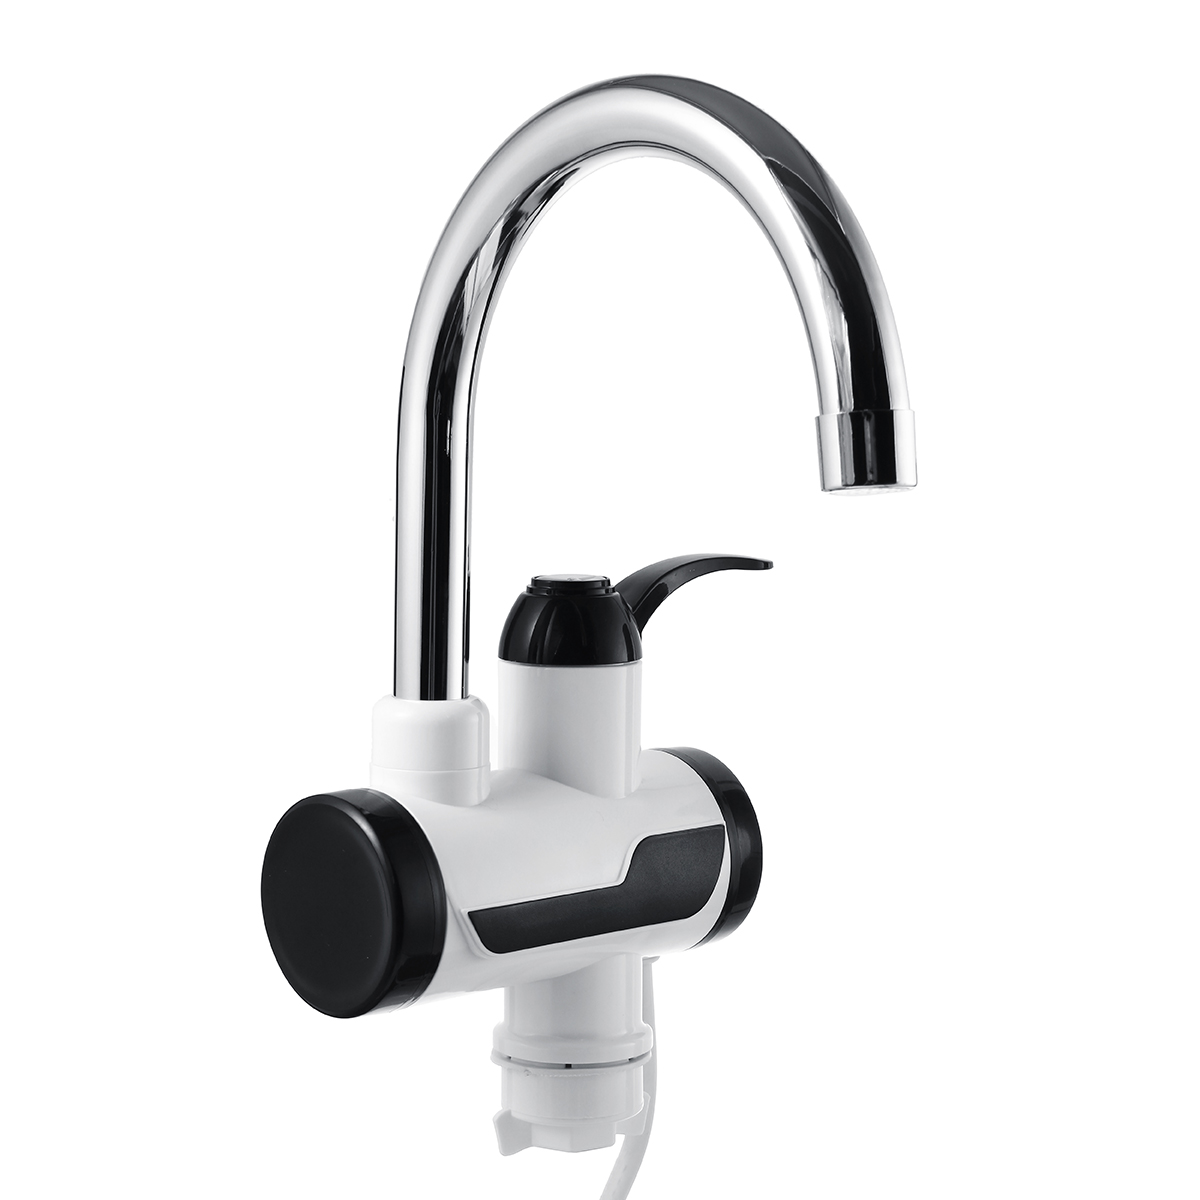 220V 3000W Instant Electric Faucet Tap Hot Water-Heater LED Display Bathroom Kitchen Faucet Tap Hot Water-Heater